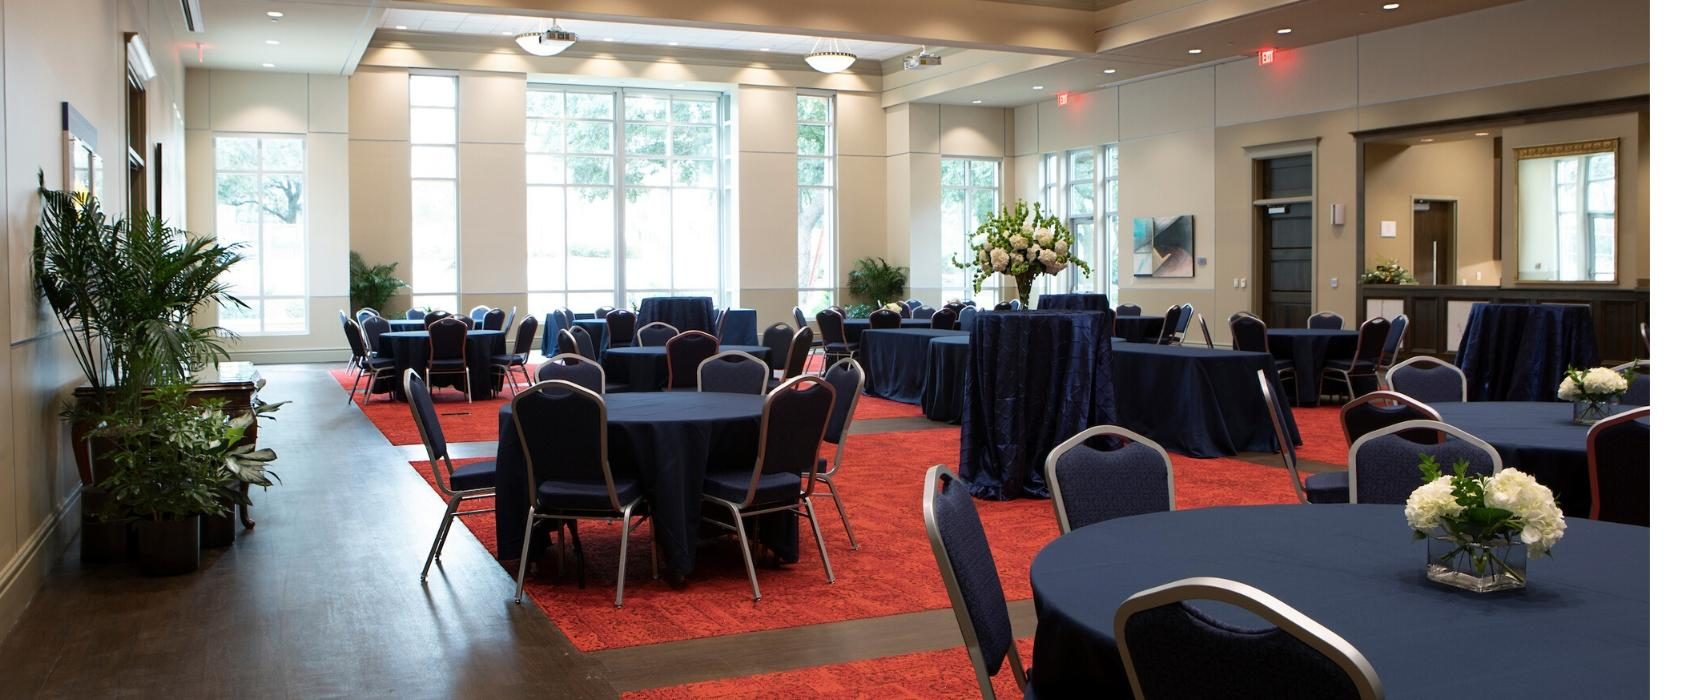 Ballroom in MacQueen Center